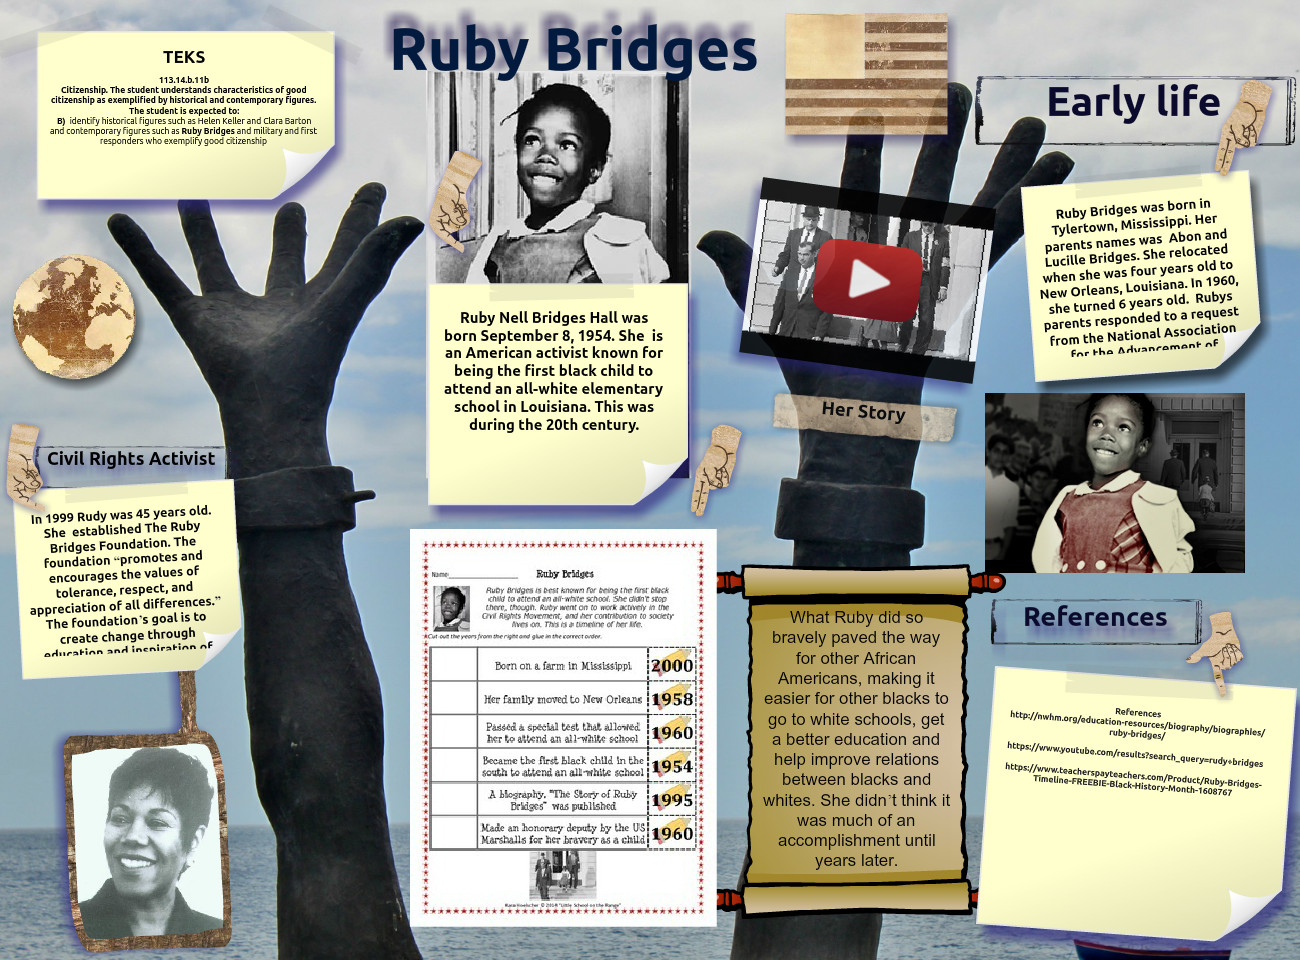 [2015] Breaun Ware: Ruby Bridges